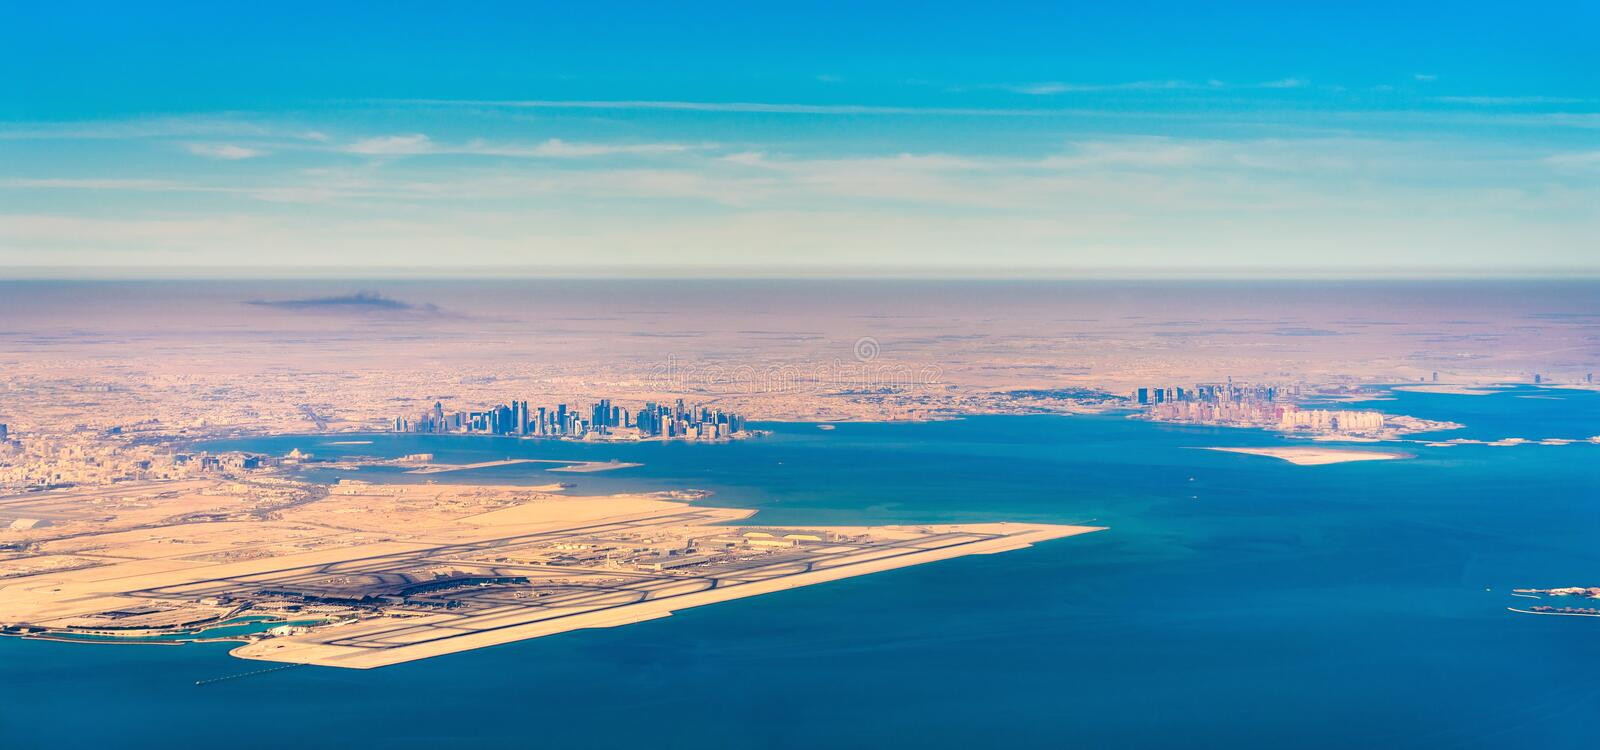 Aerial view of Doha and Hamad International Airport. Qatar, the Middle East royalty free stock photo